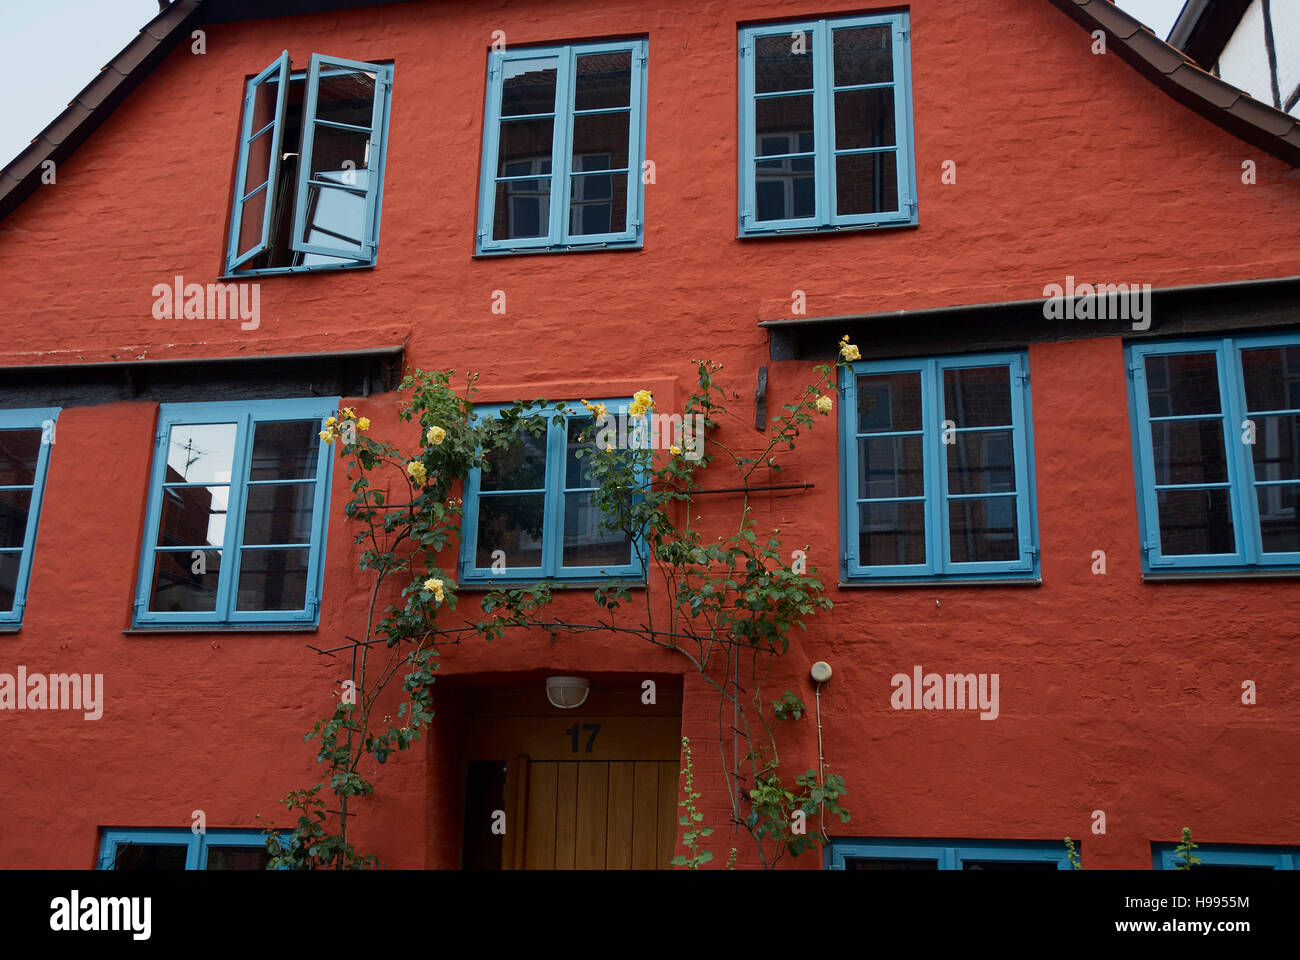 Nicely decorated house in the historical city center of the old Hansestadt Lüneburg, Germany - Stock Image